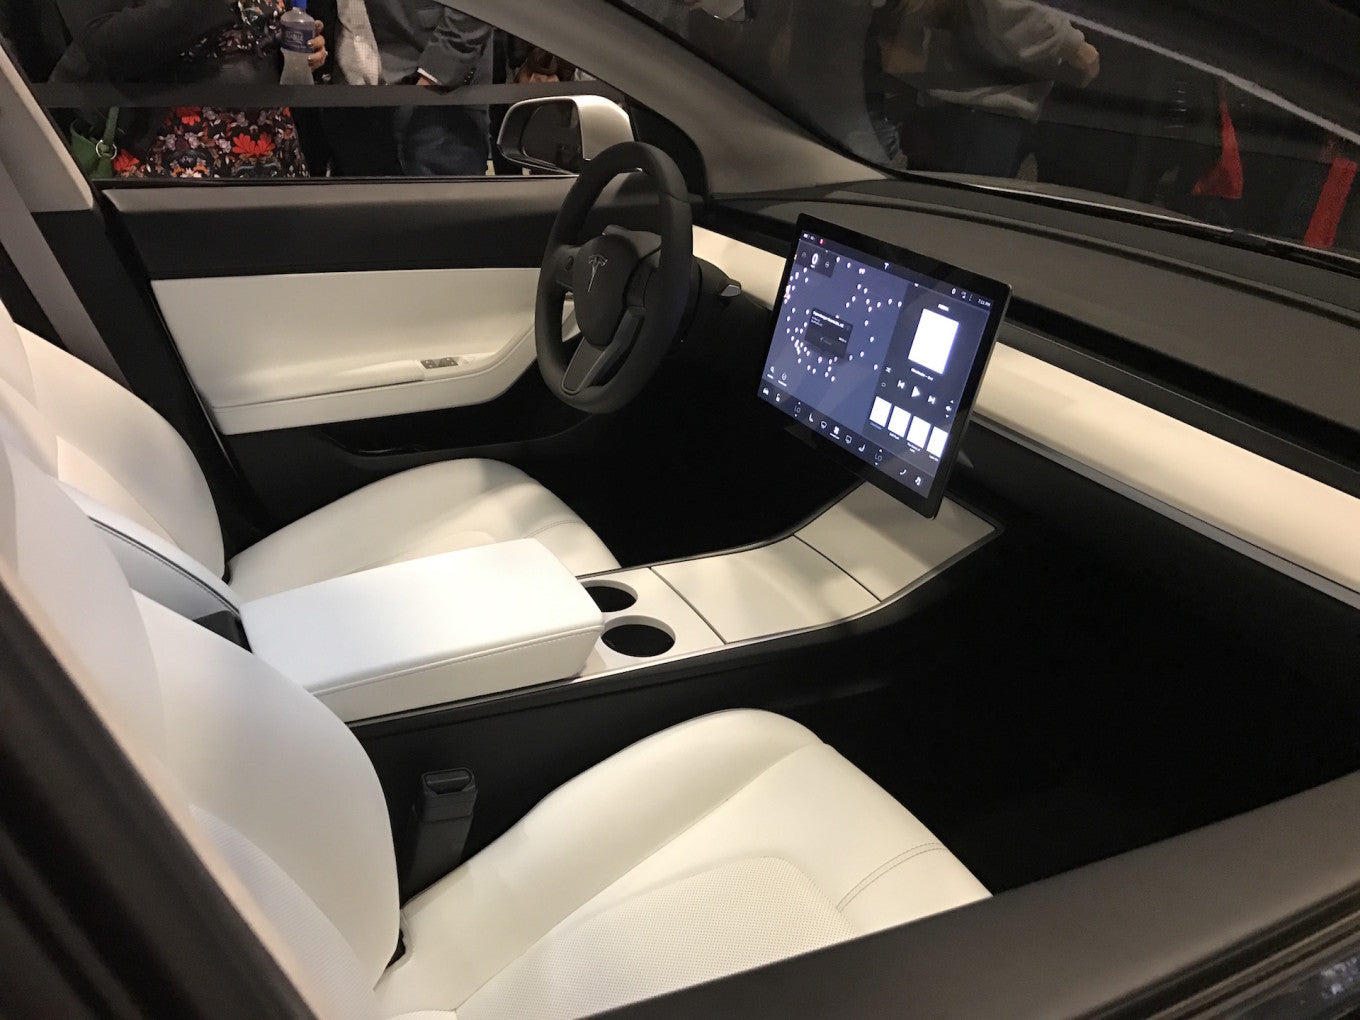 Tesla filed a patent for new material. Are we waiting for an update of the material for the seats and interior trim?